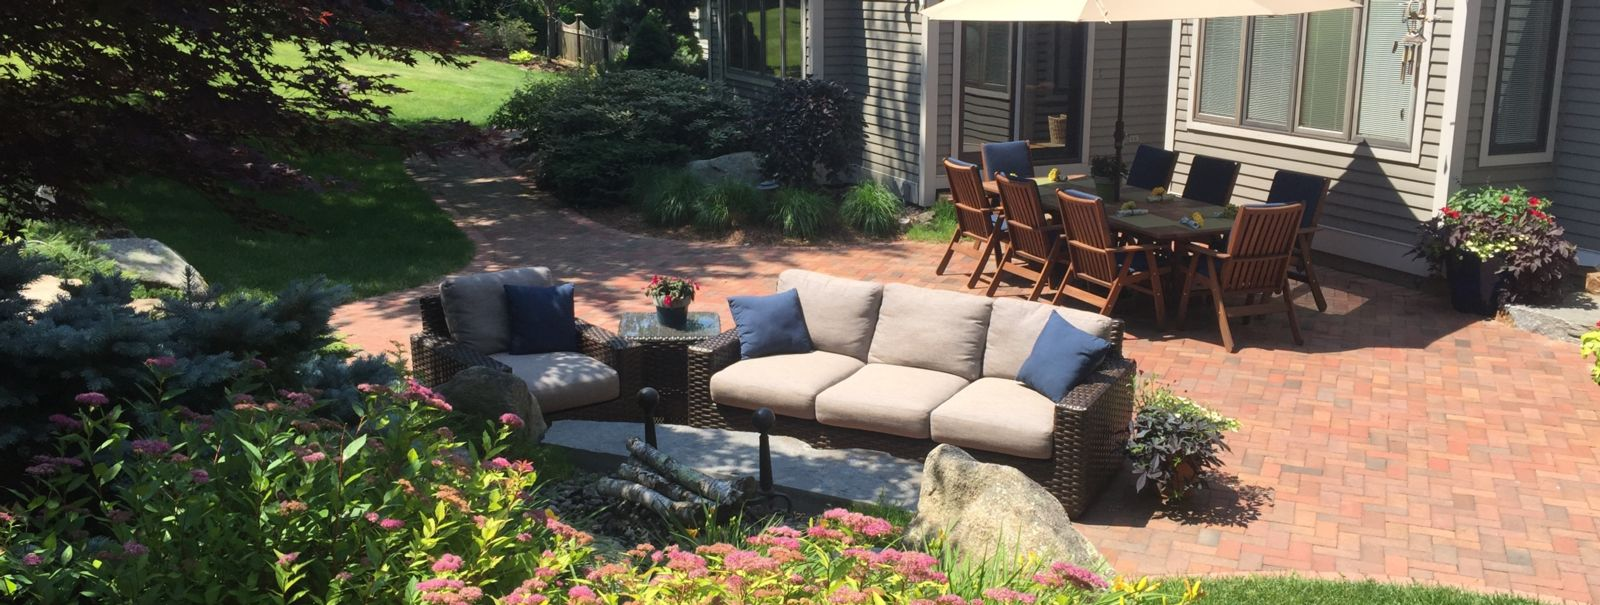 5 creative ways to transform your backyard for entertaining